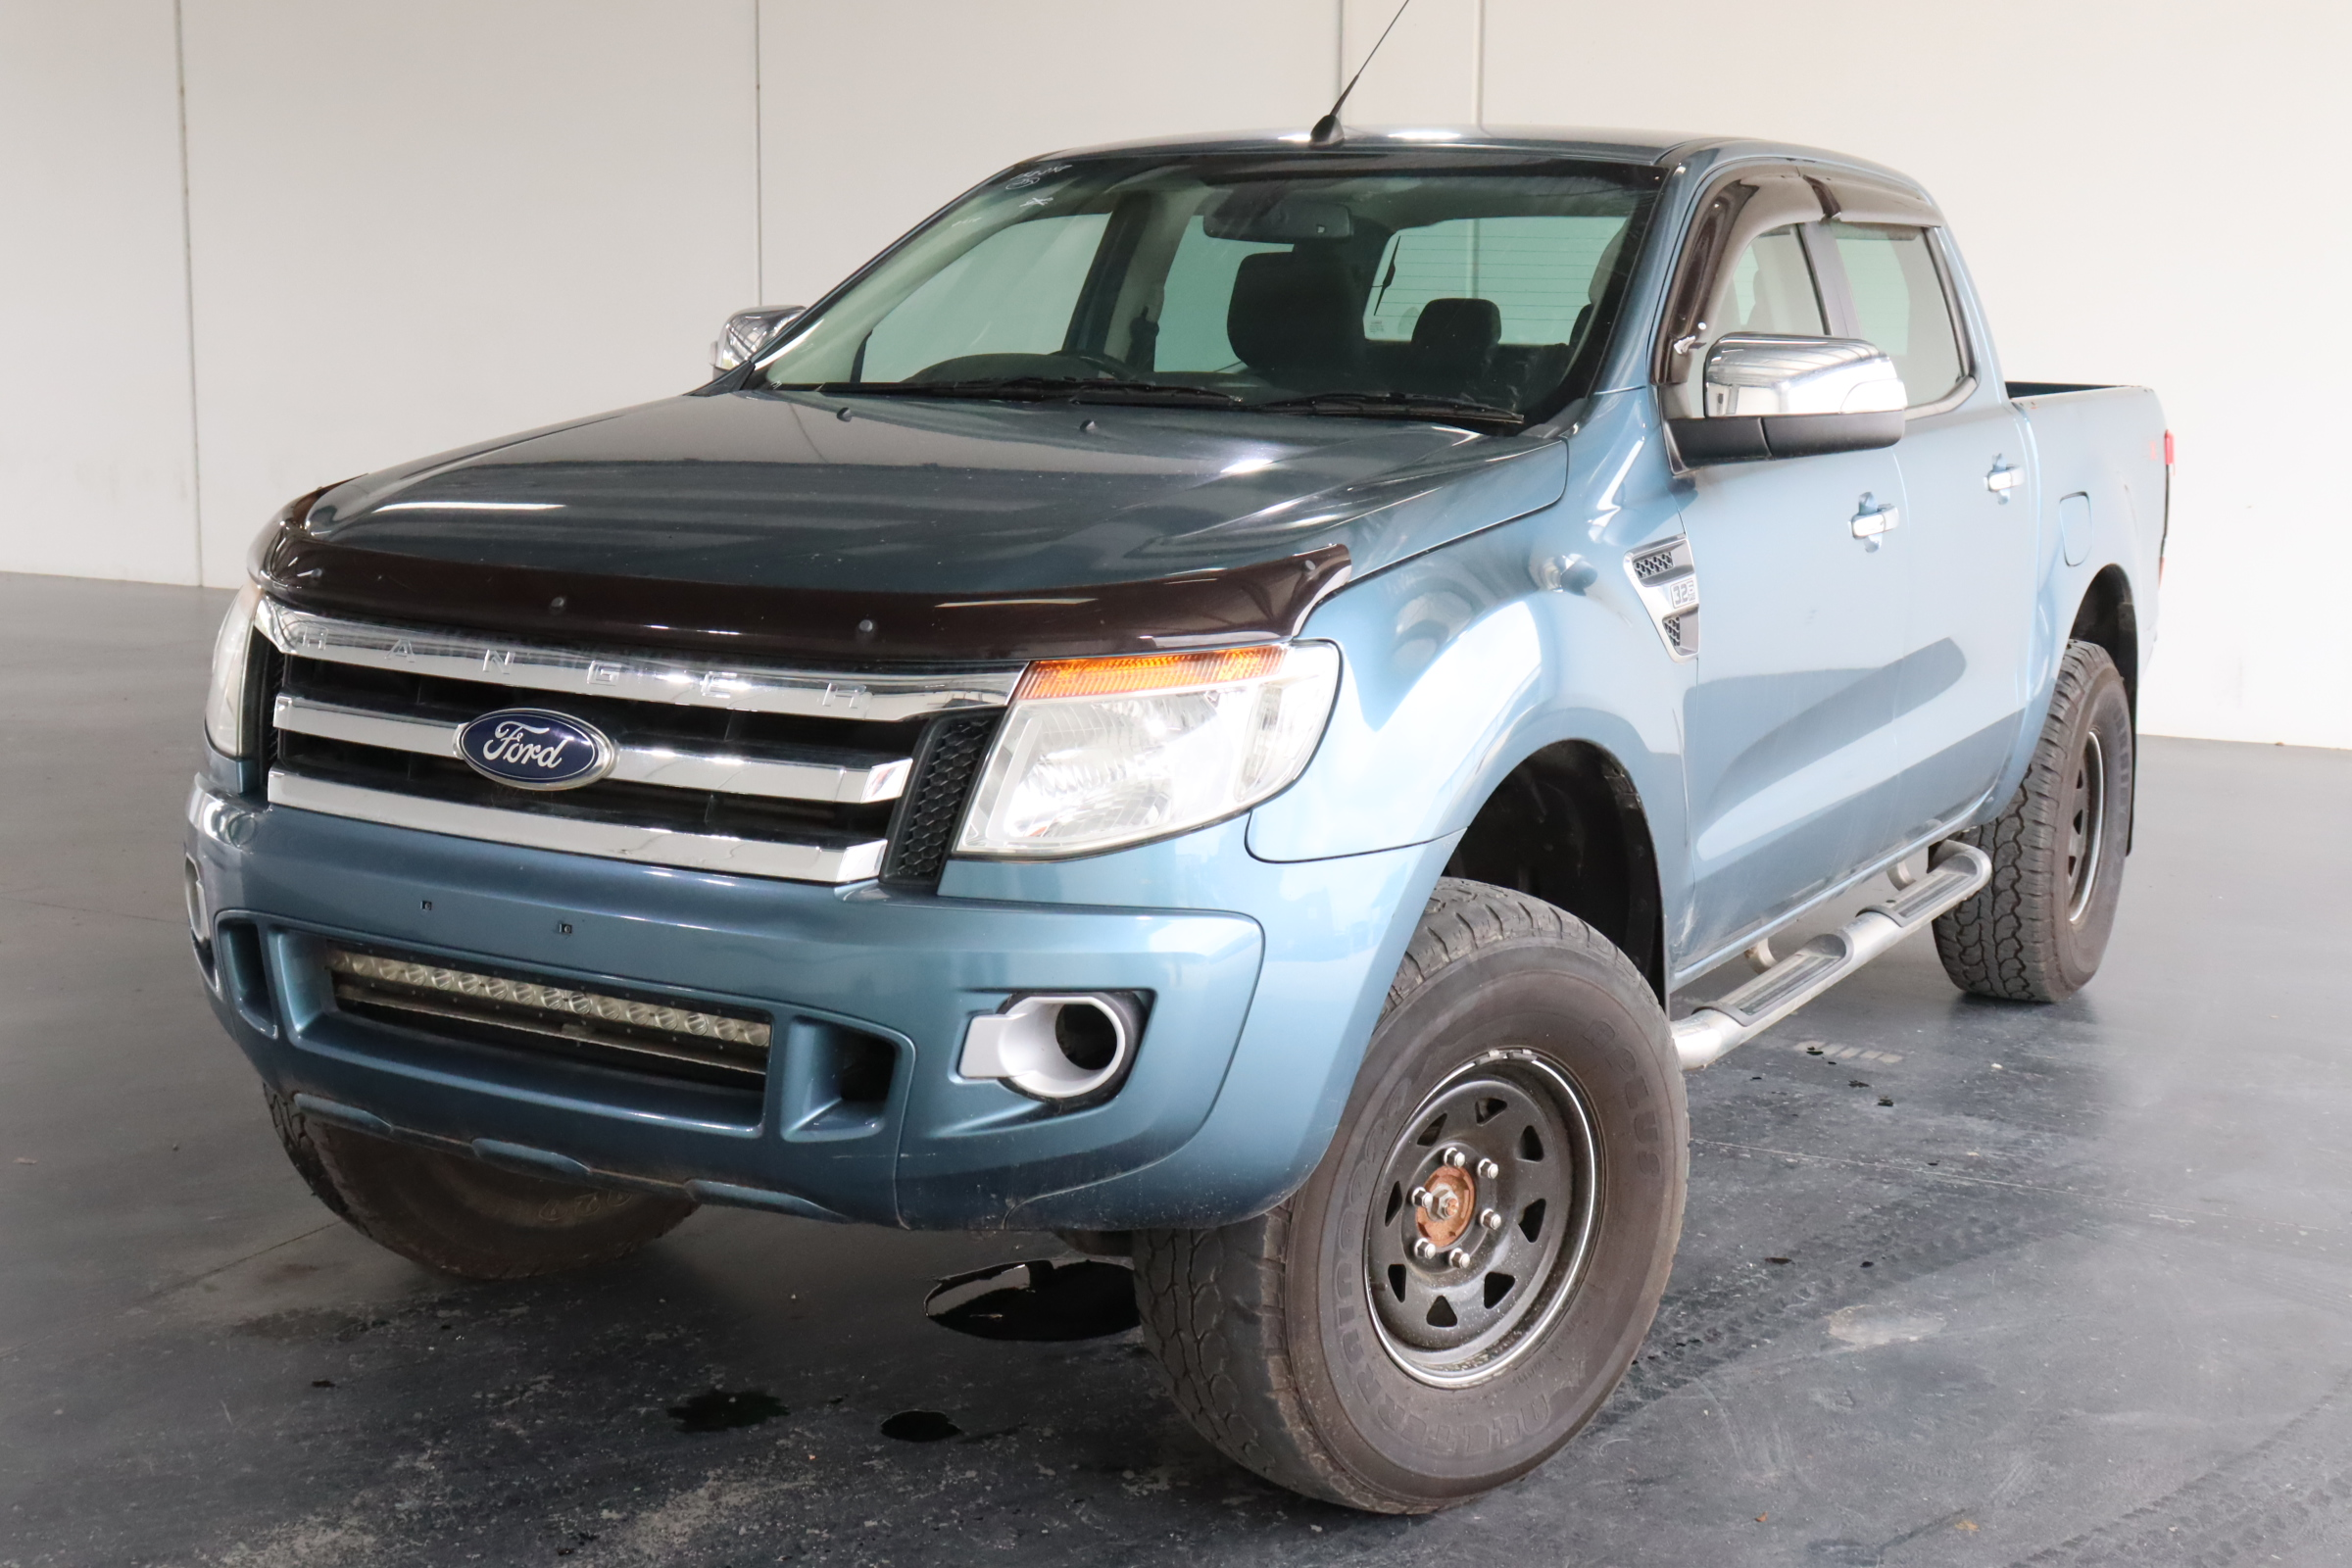 2013 Ford Ranger XLT 4X4 PX Turbo Diesel Manual Dual Cab